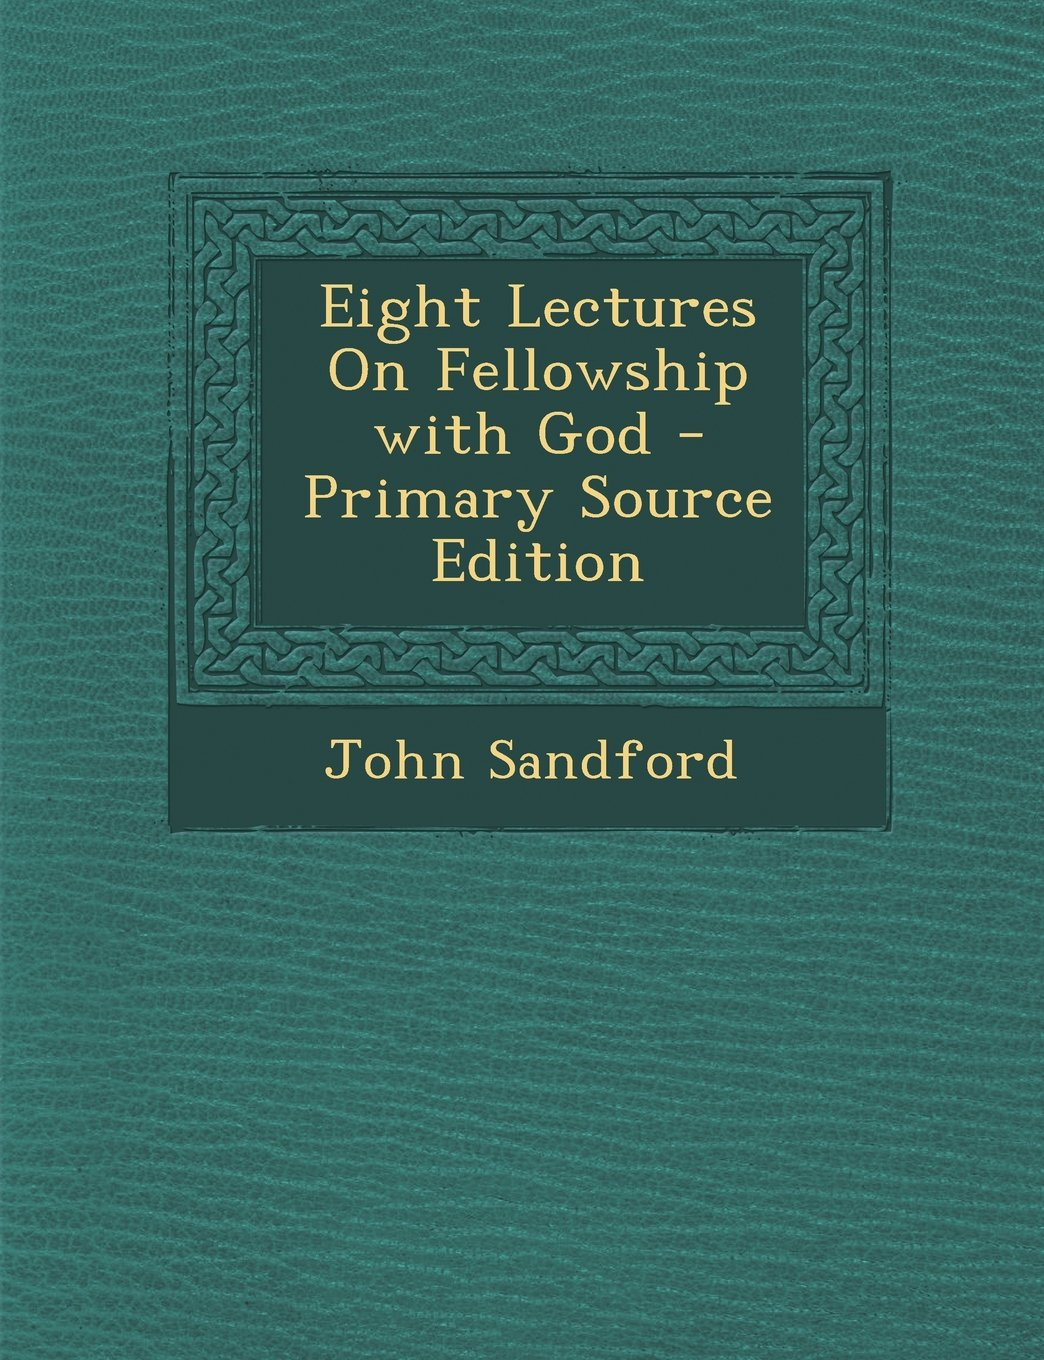 Eight Lectures On Fellowship with God PDF